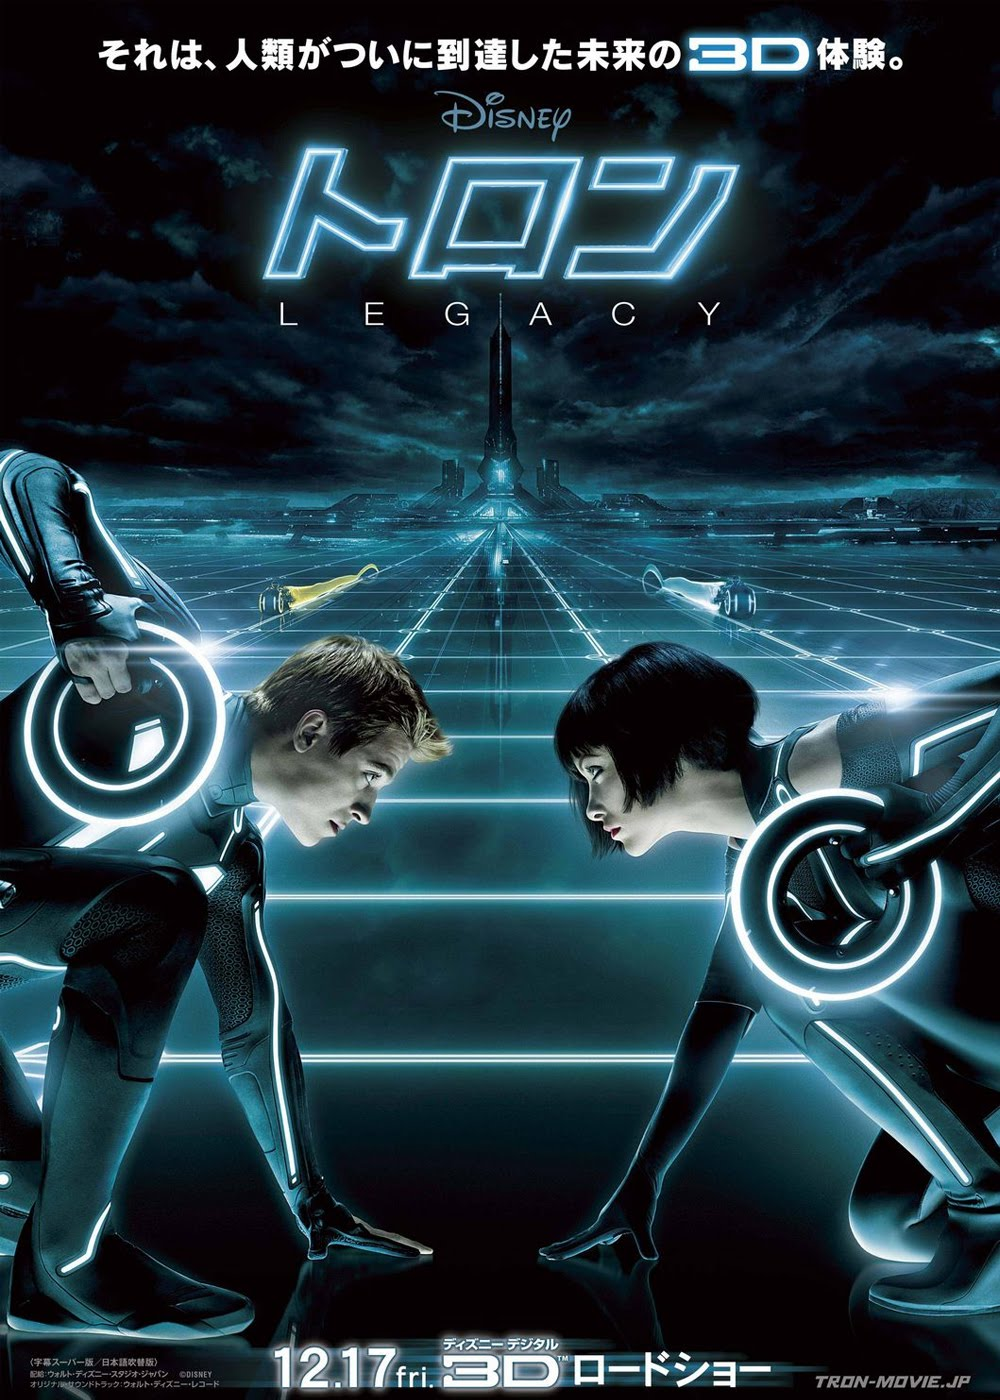 Tron+legacy+light+cycle+